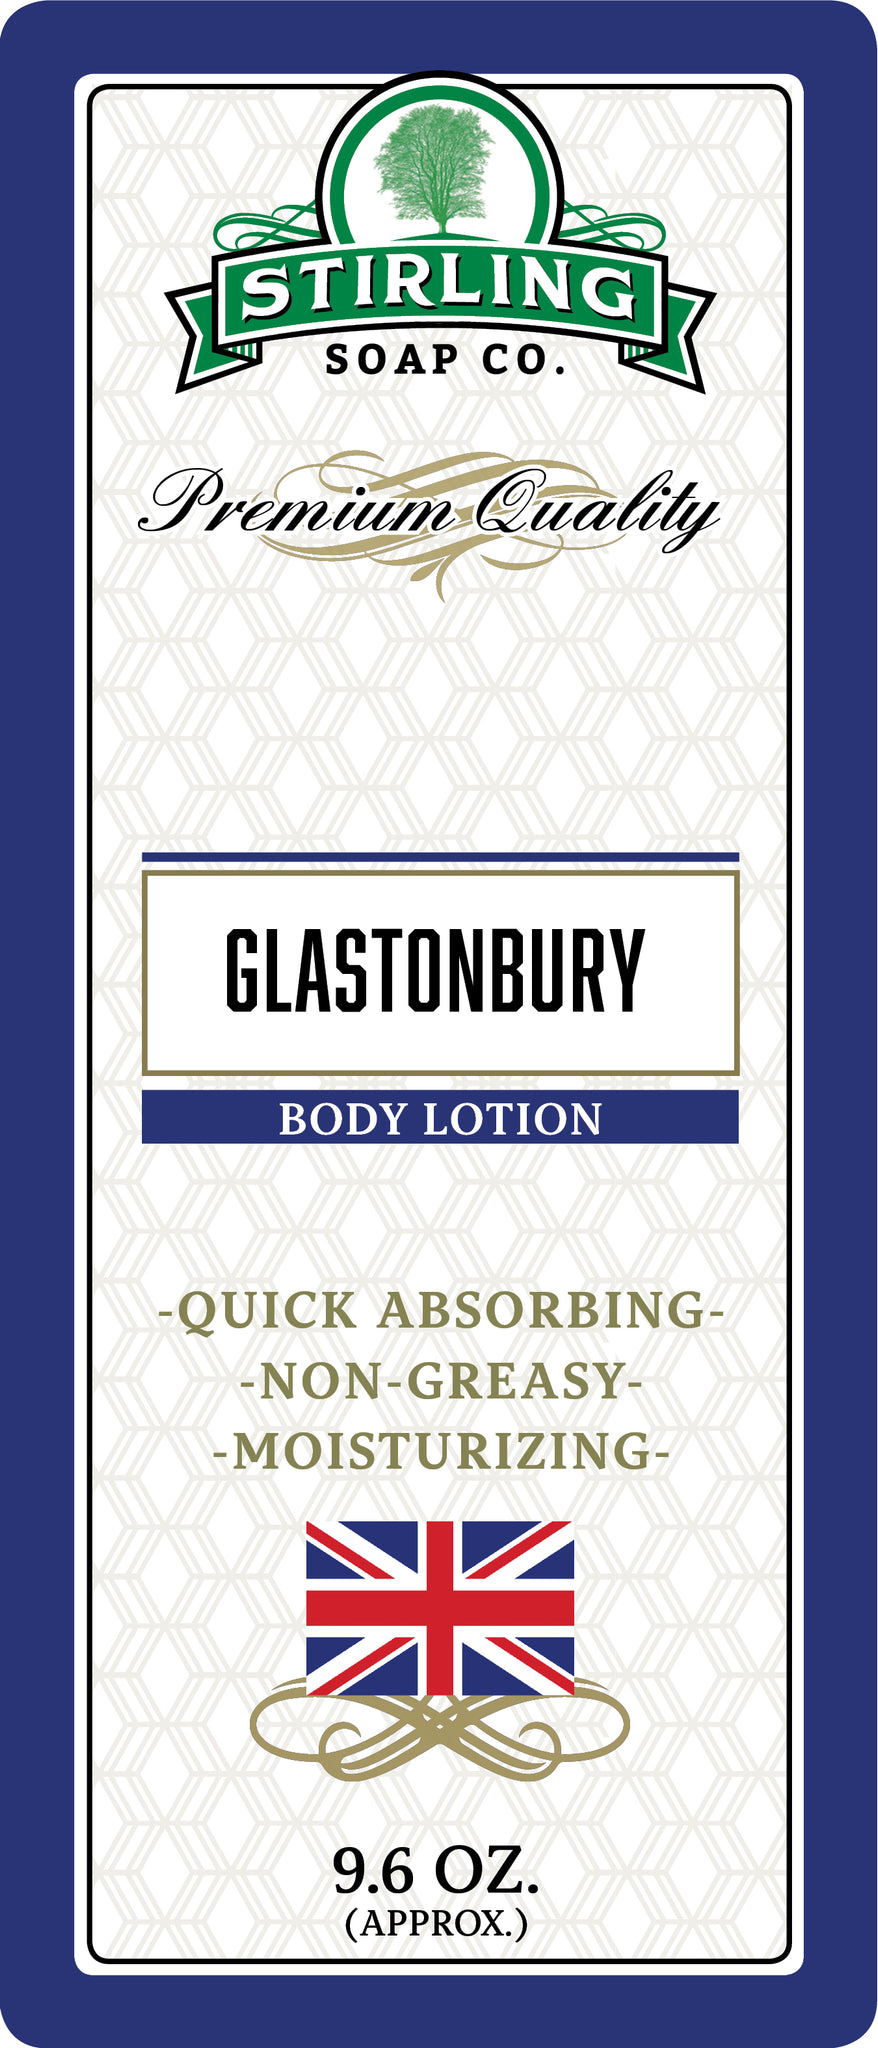 Glastonbury - Body Lotion